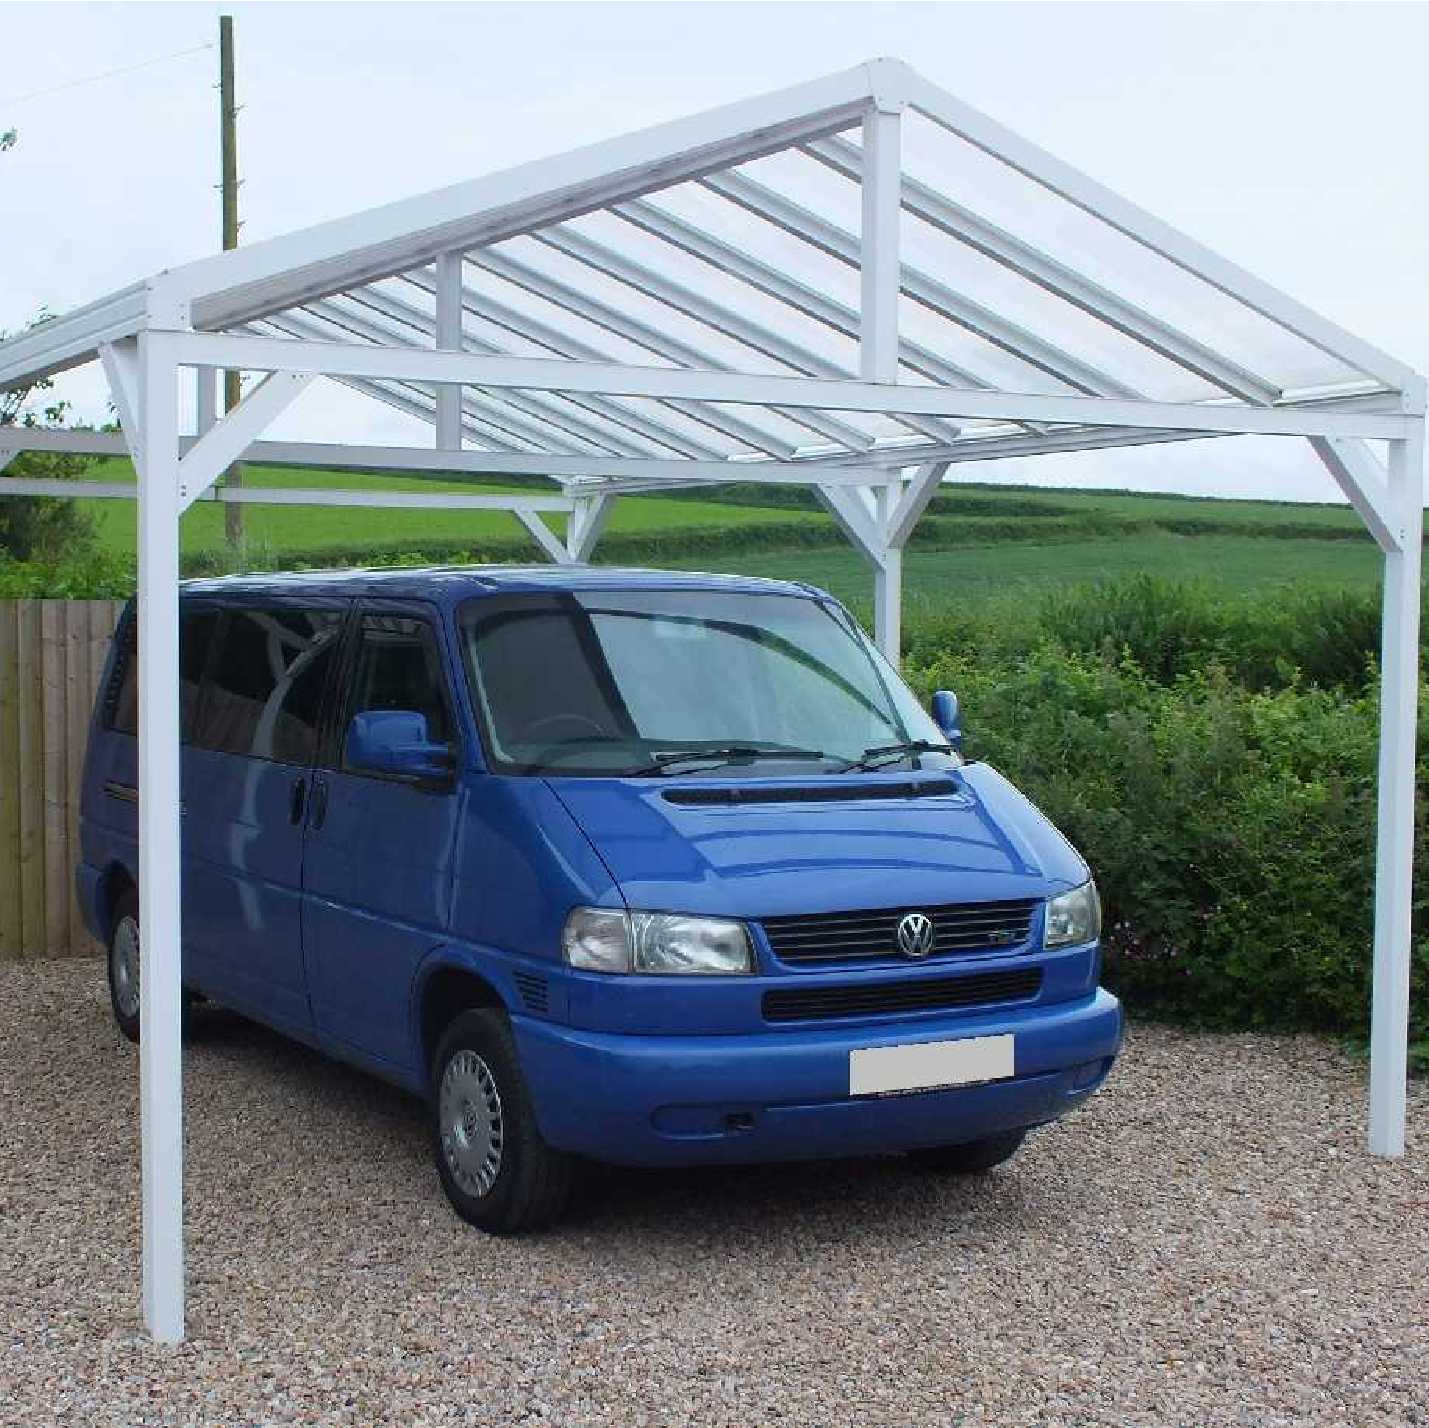 Omega Smart Canopy - Free Standing with Gable Roof (type 1)